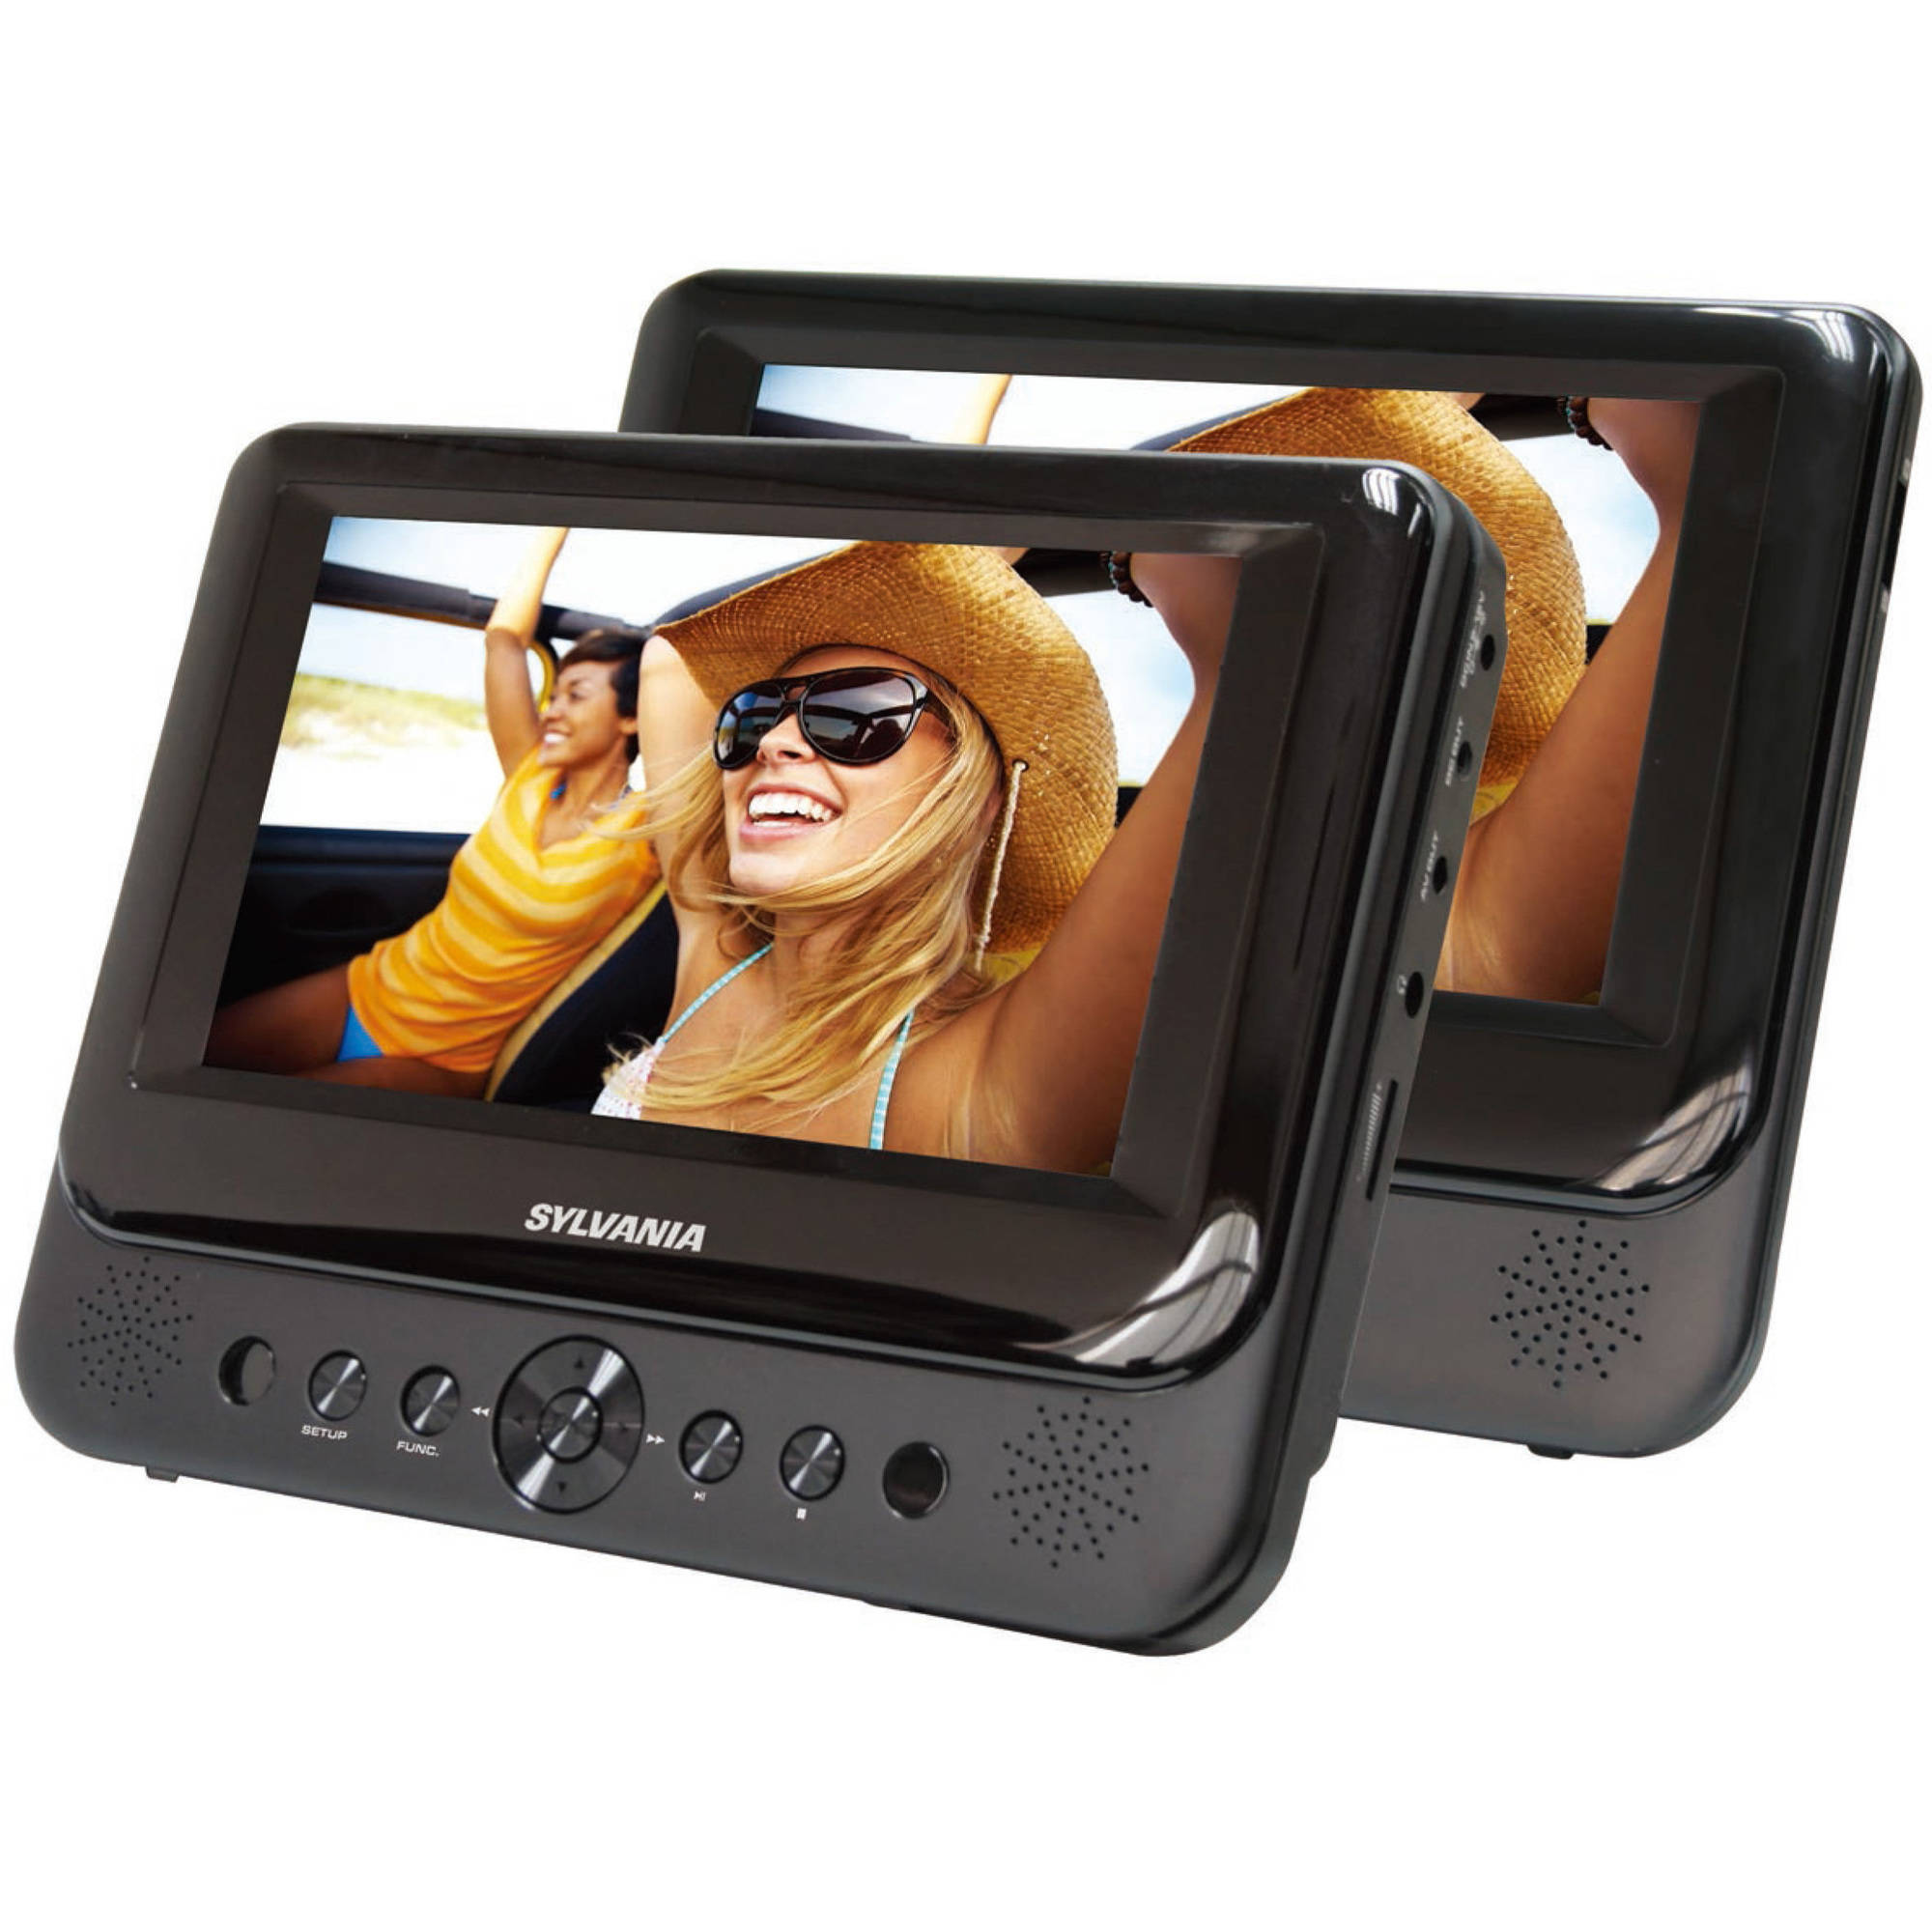 "Sylvania, 7"" Dual Screen Portable DVD Player, Black"